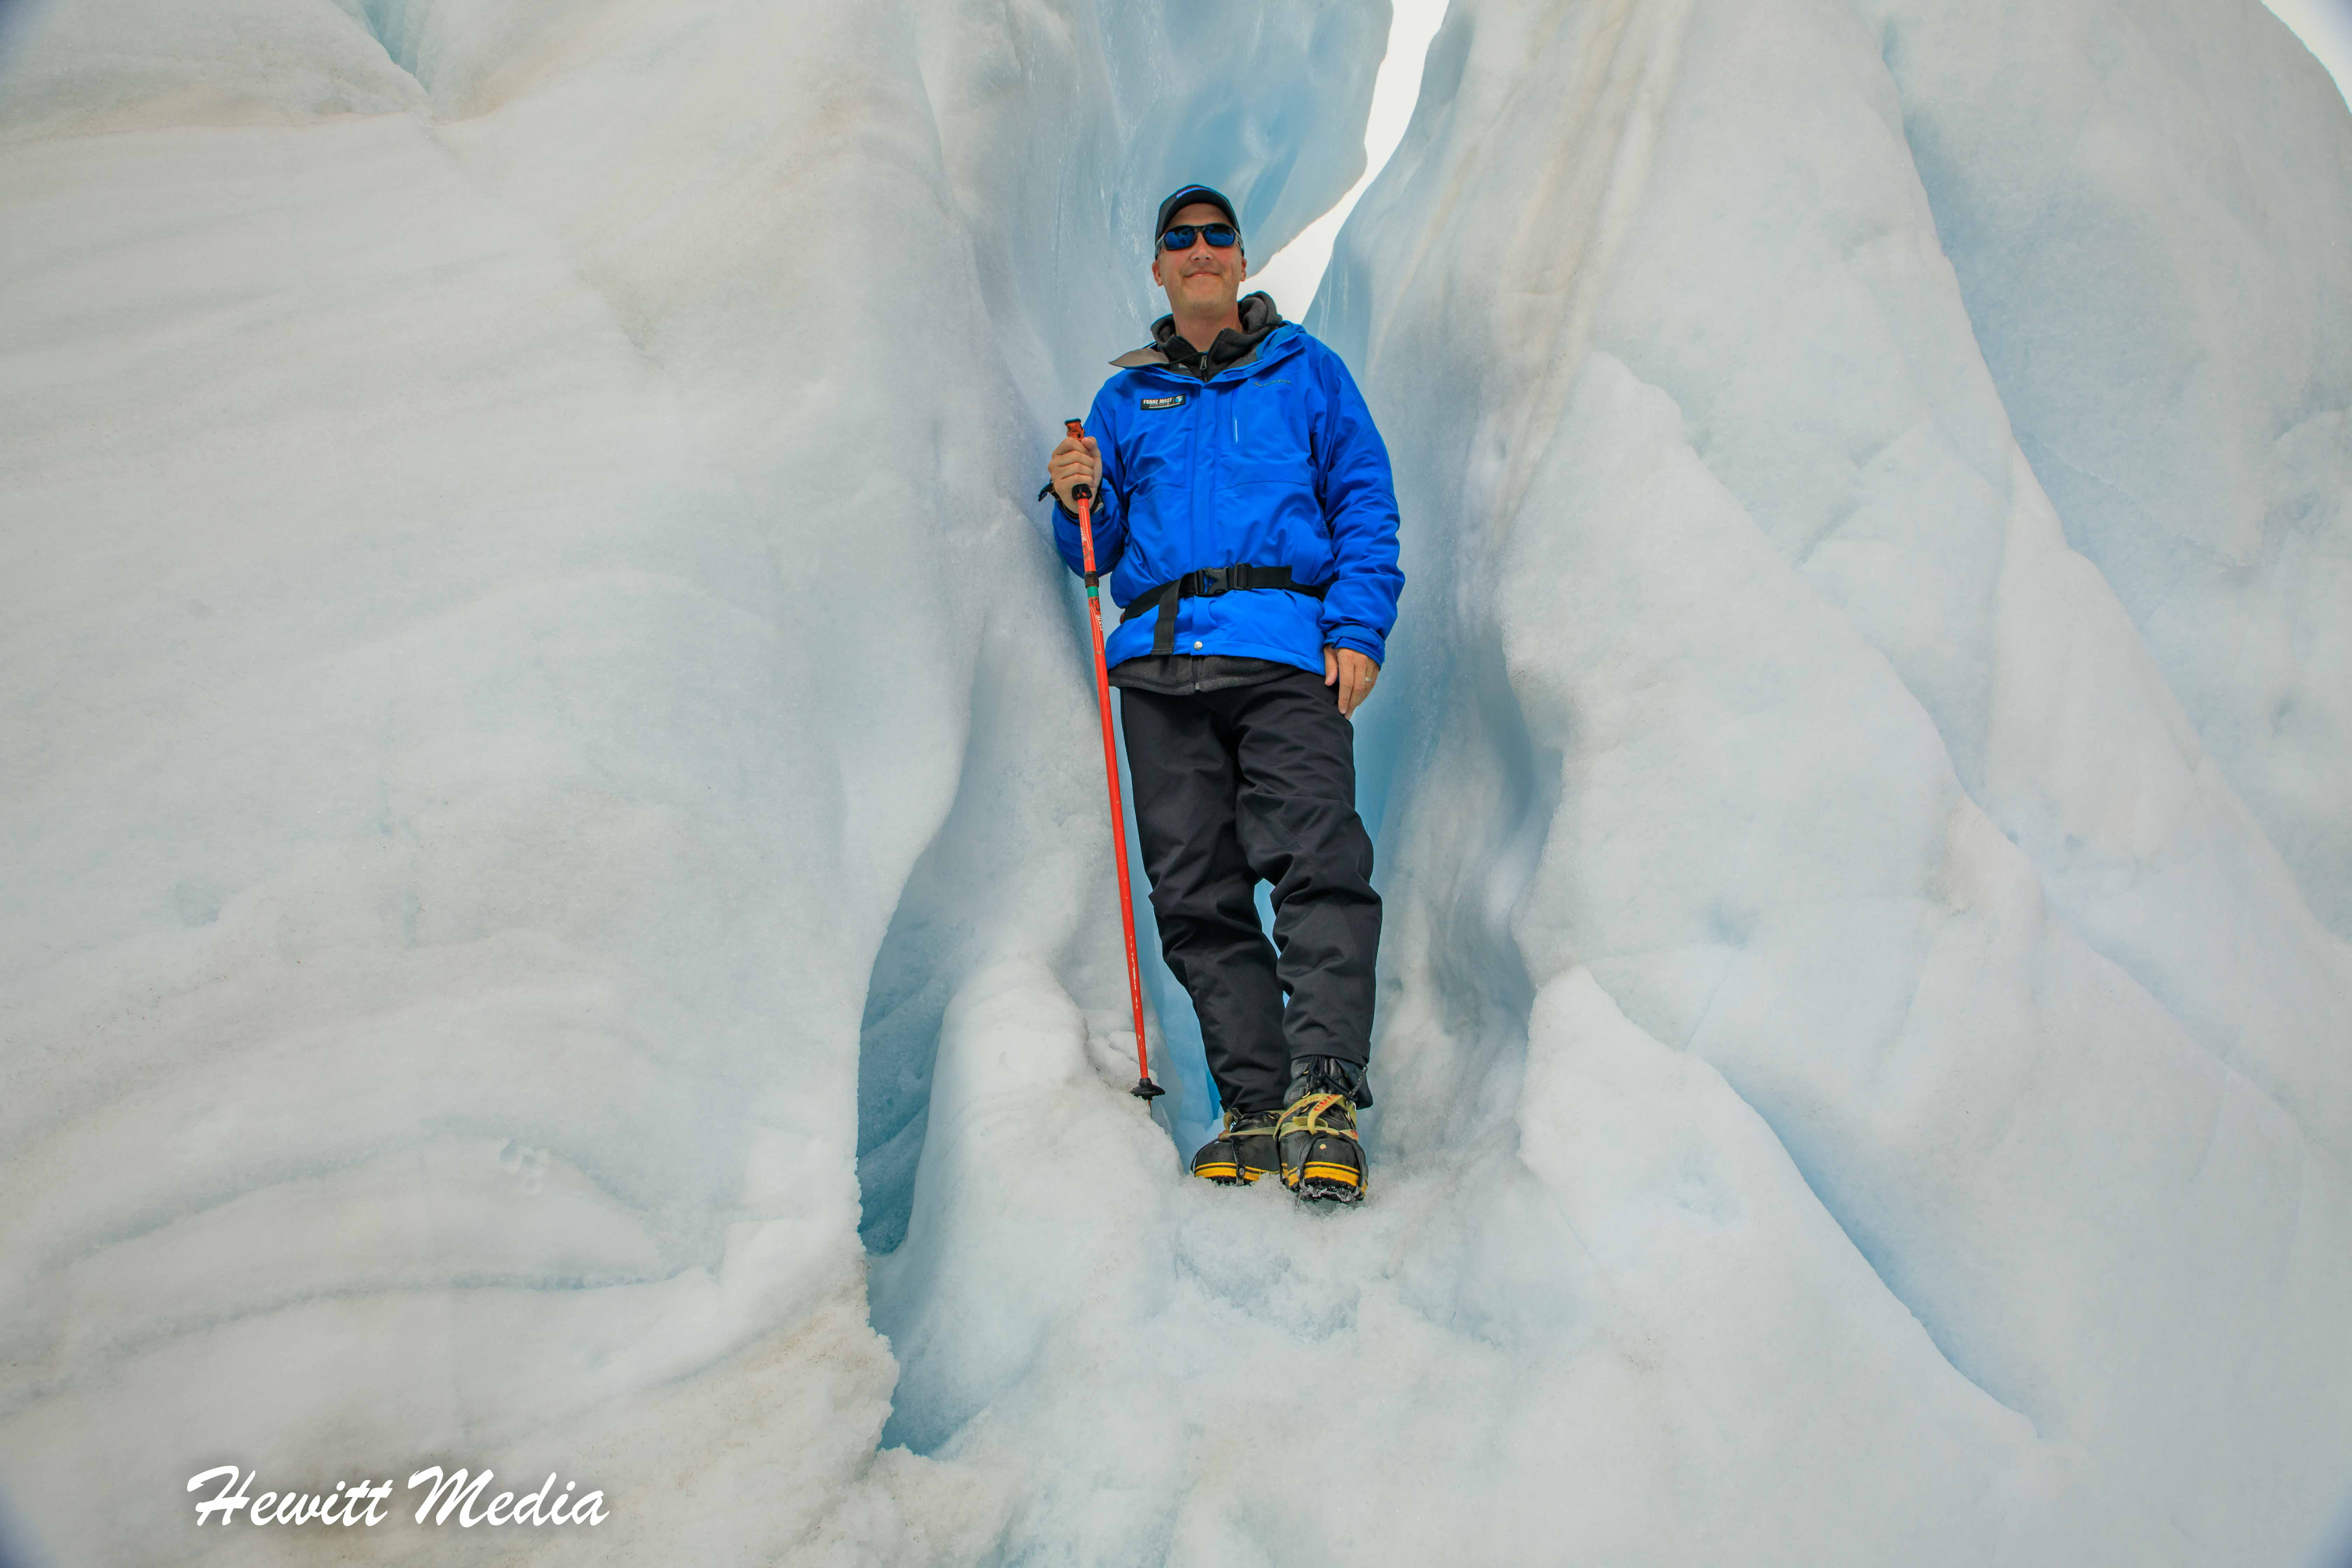 Posing on an ice formation on Franz Josef Glacier